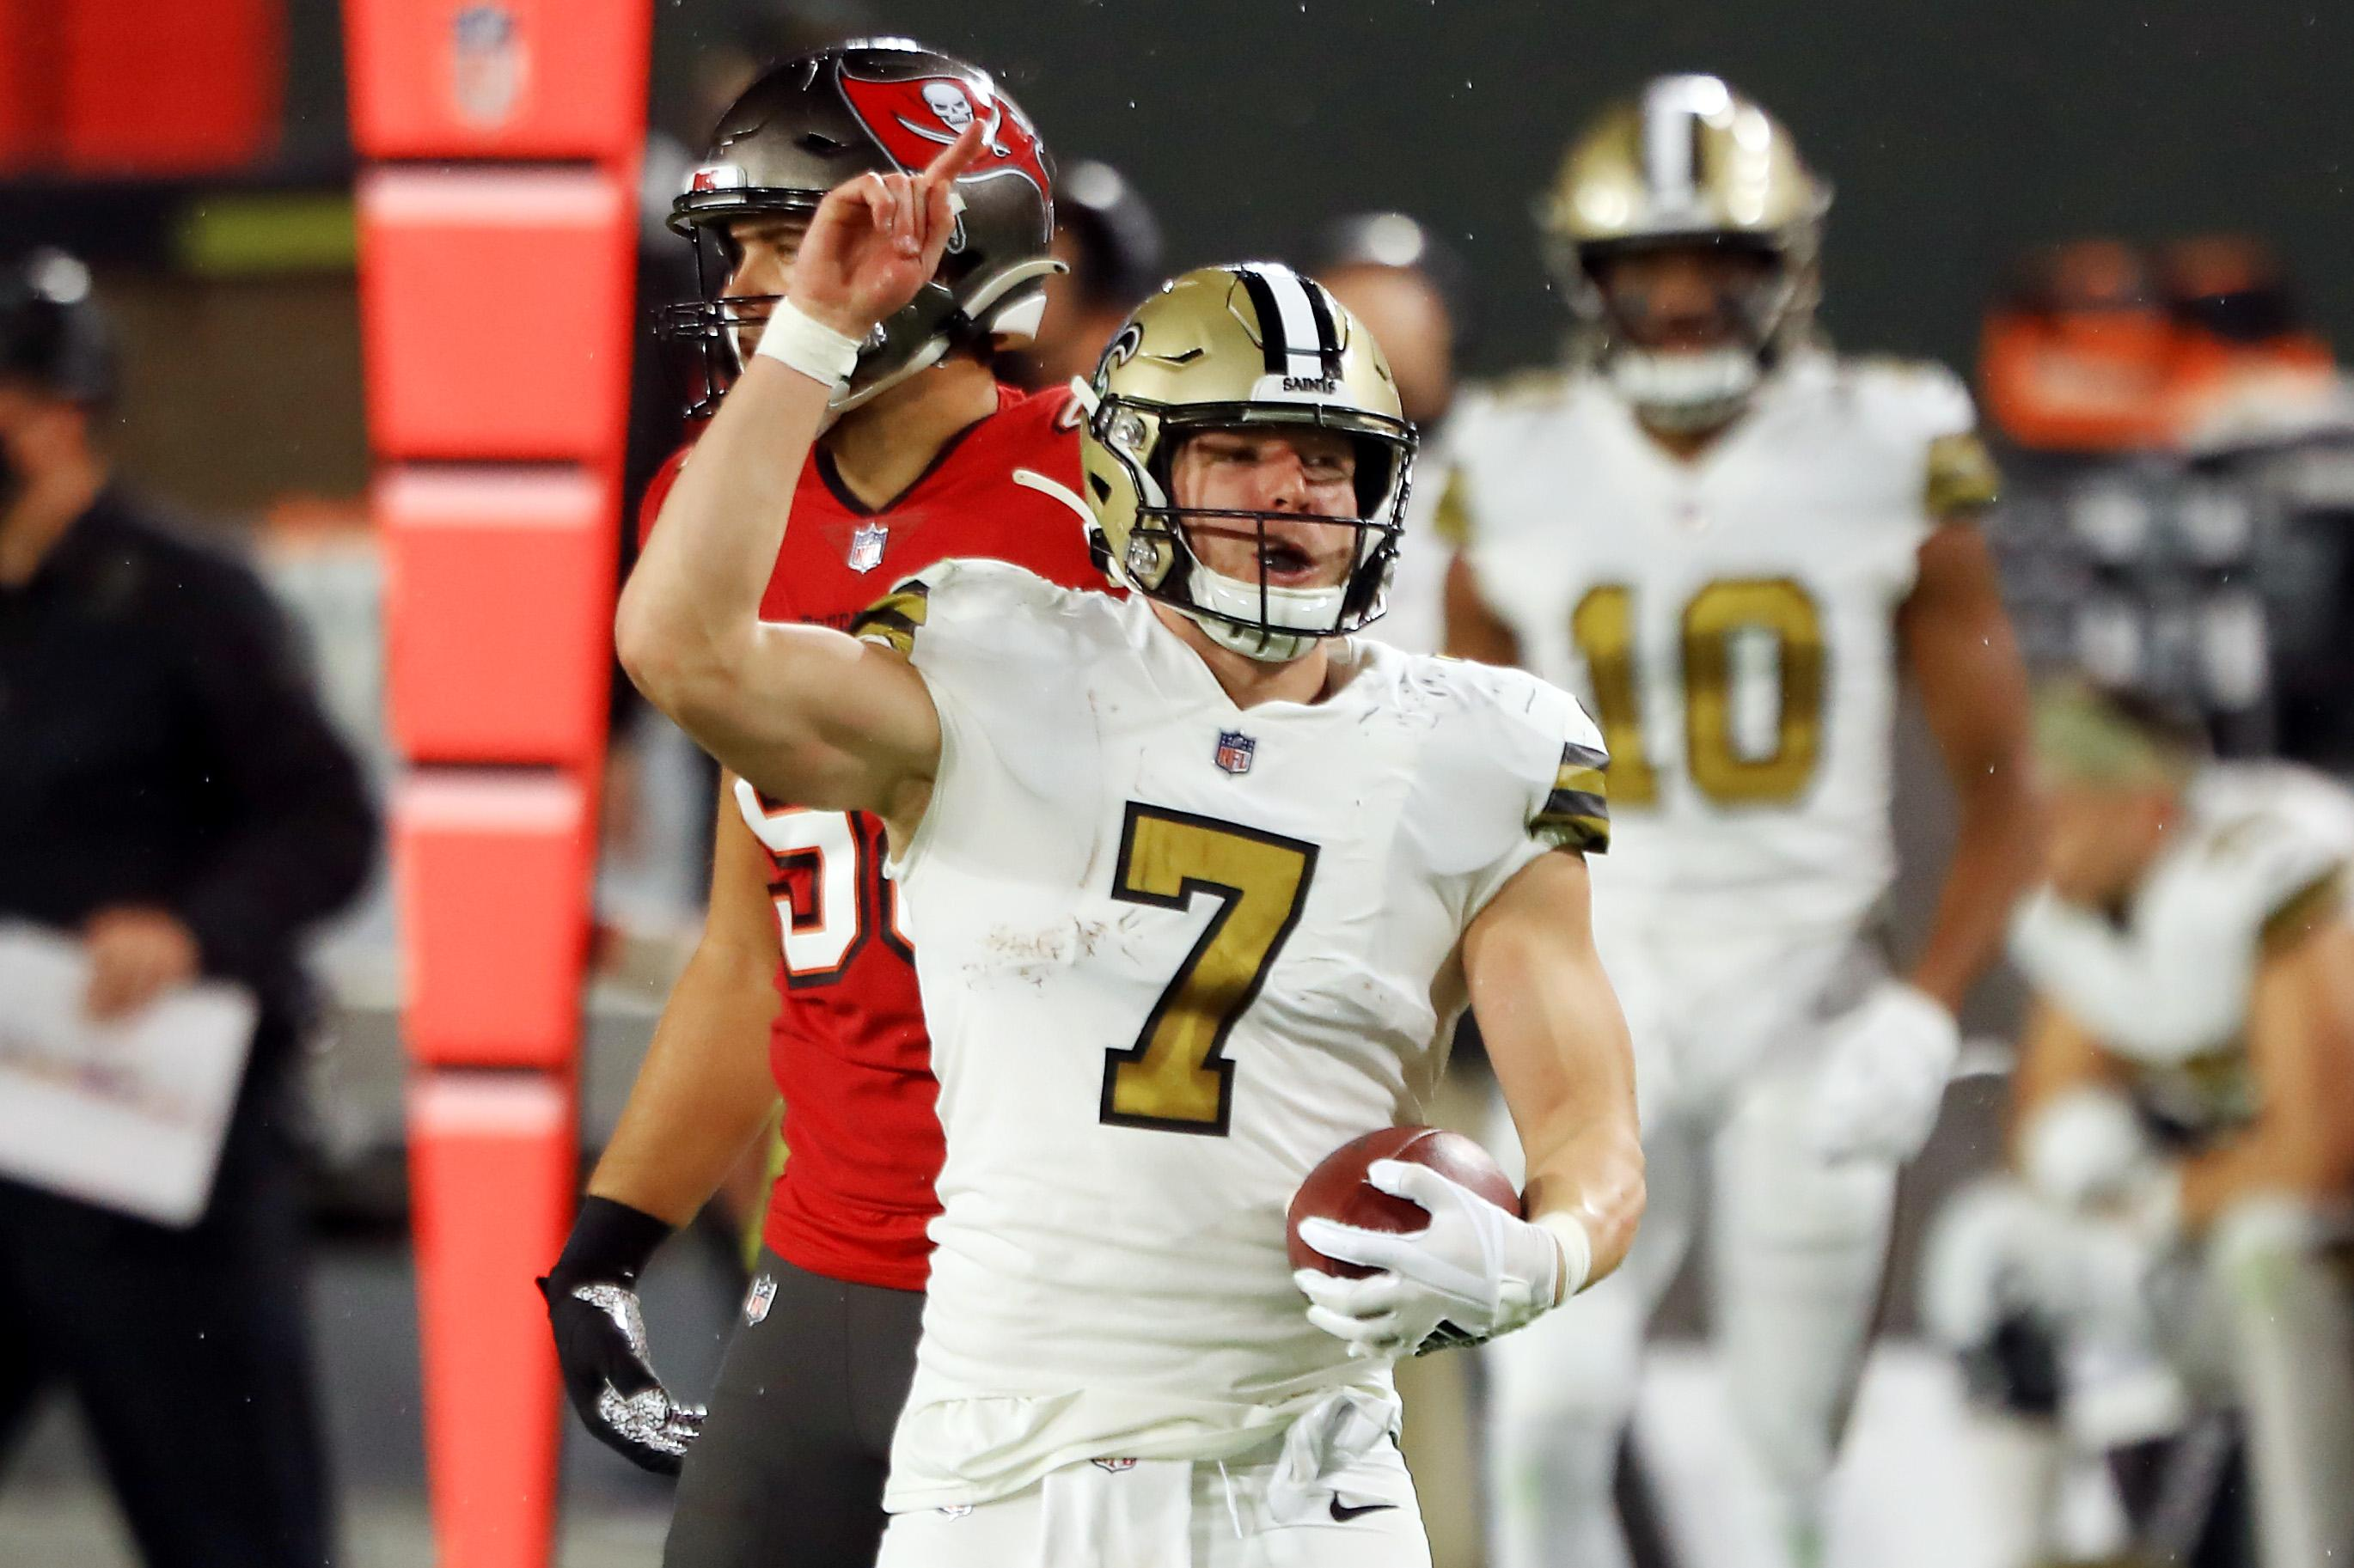 Saints place Brees on injured reserve